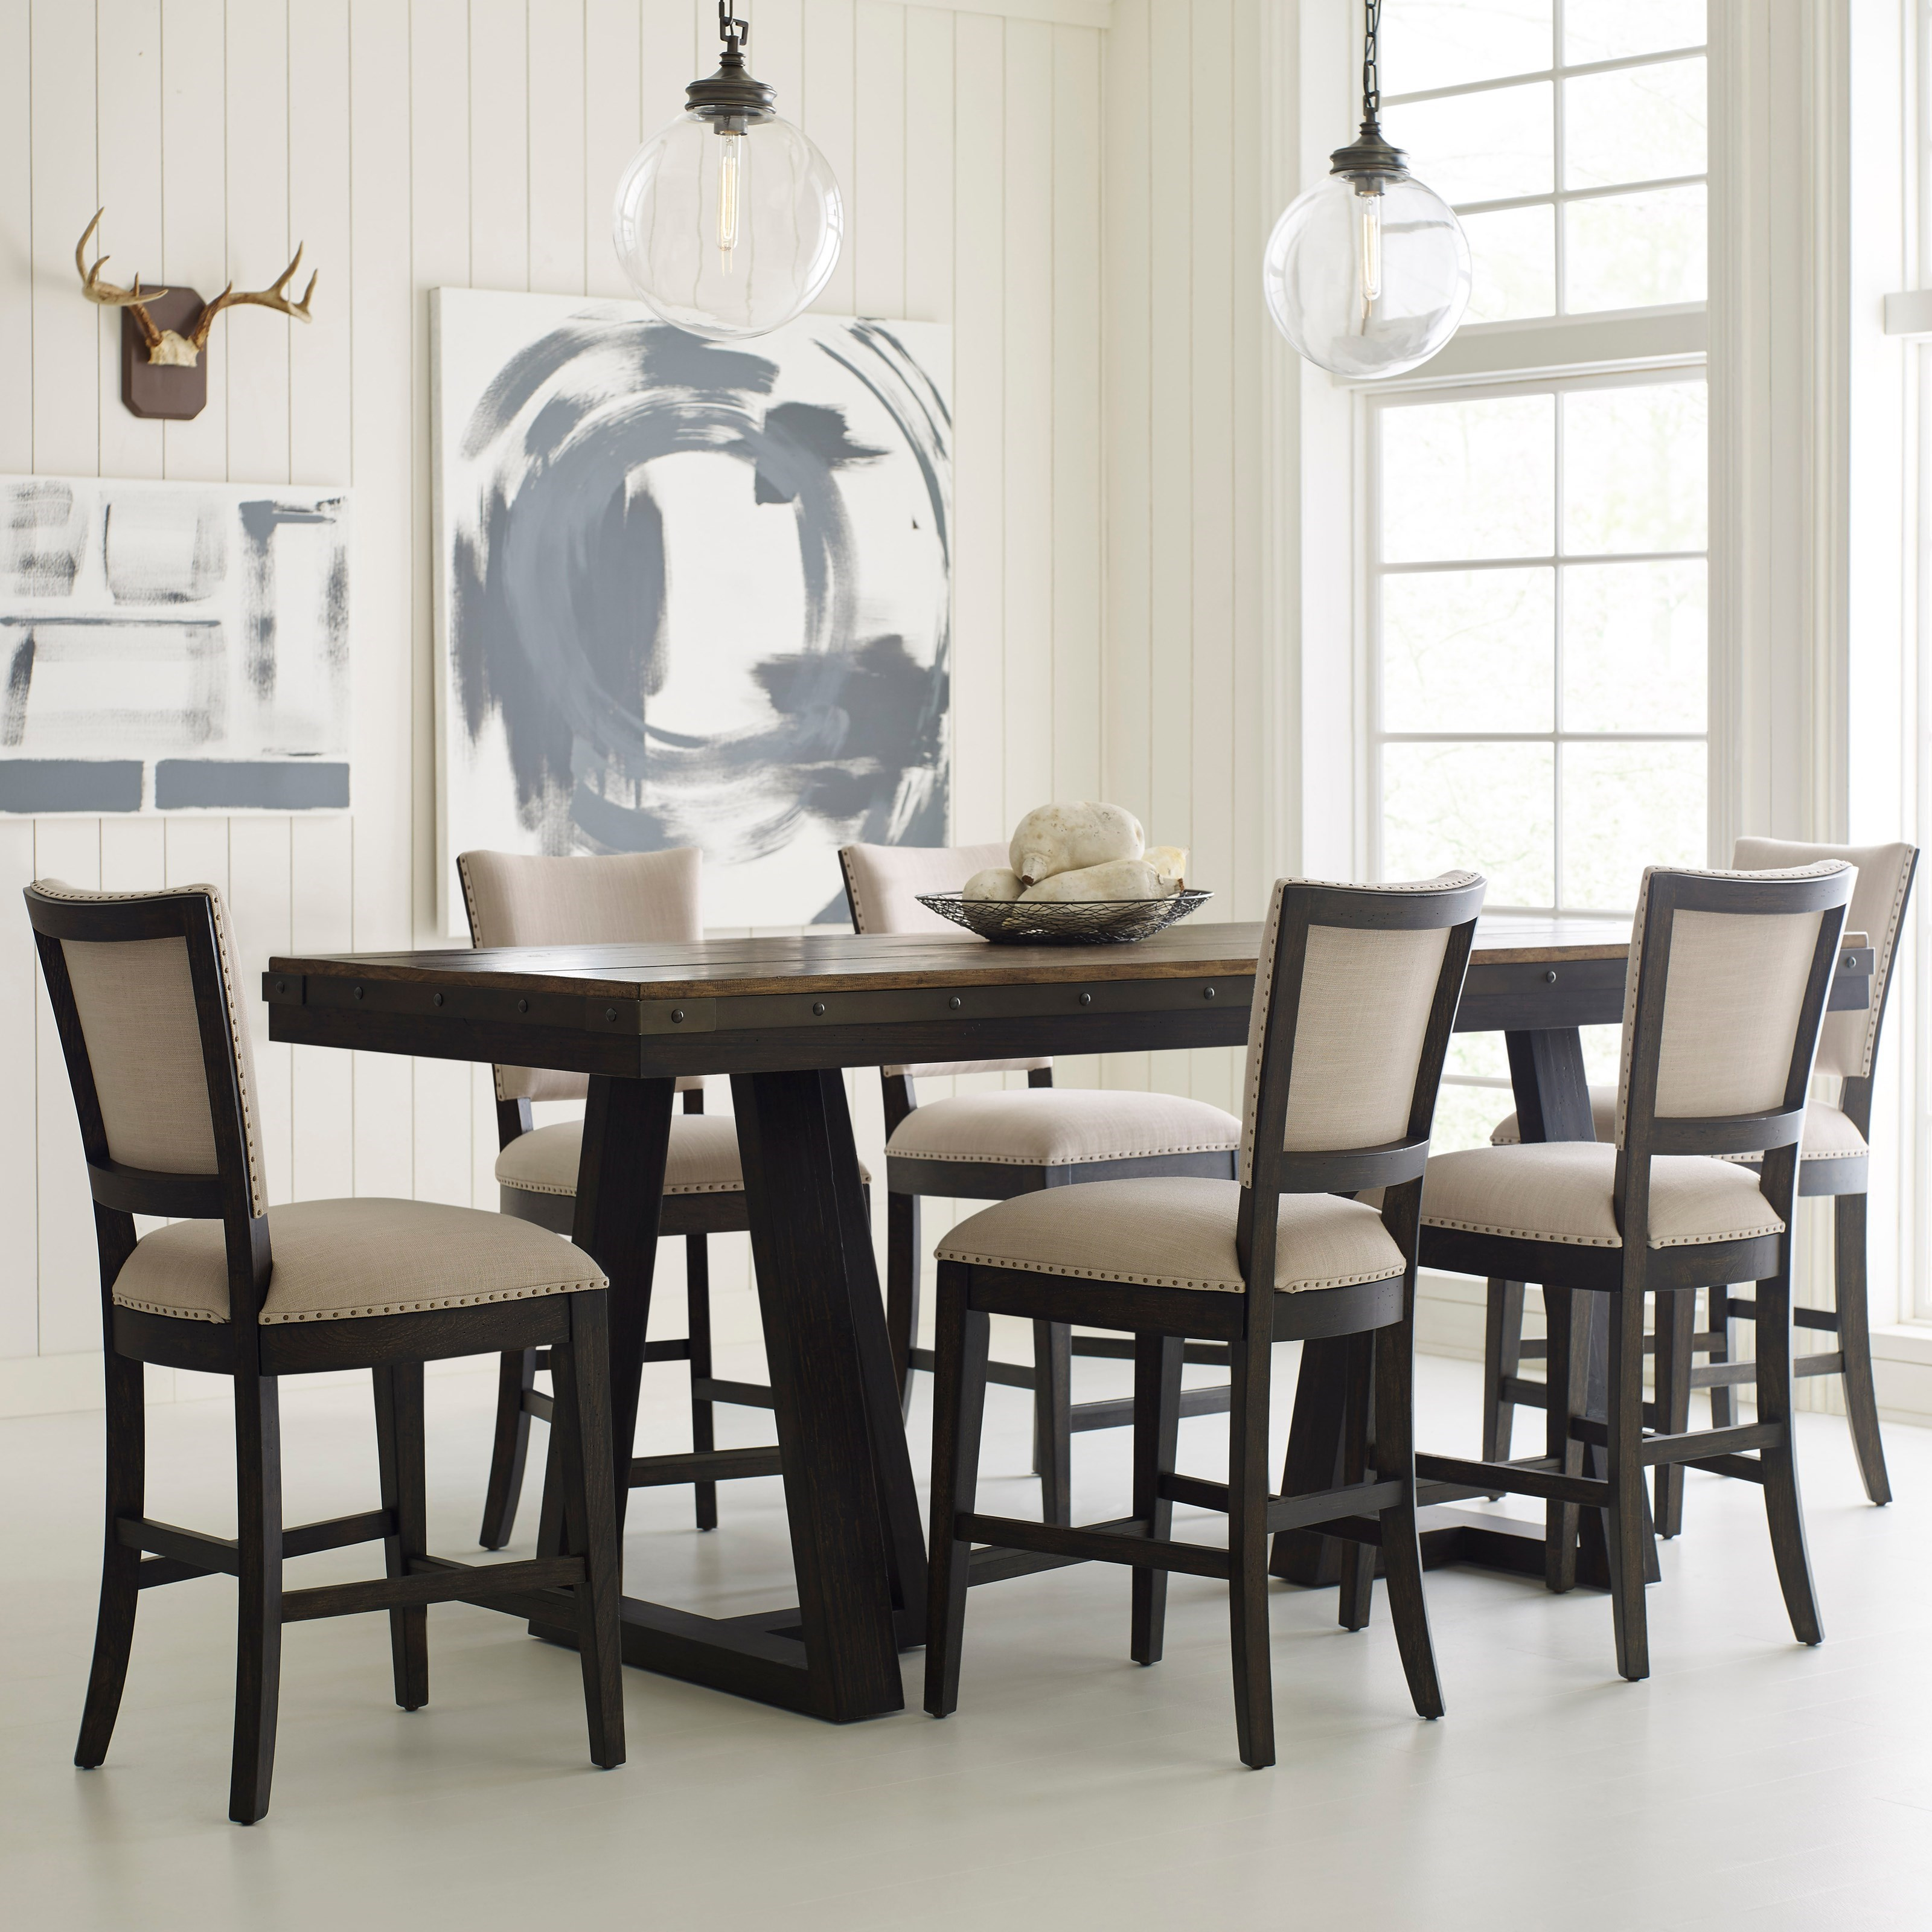 Plank Road 7 Pc Counter Height Dining Set by Kincaid Furniture at Northeast Factory Direct